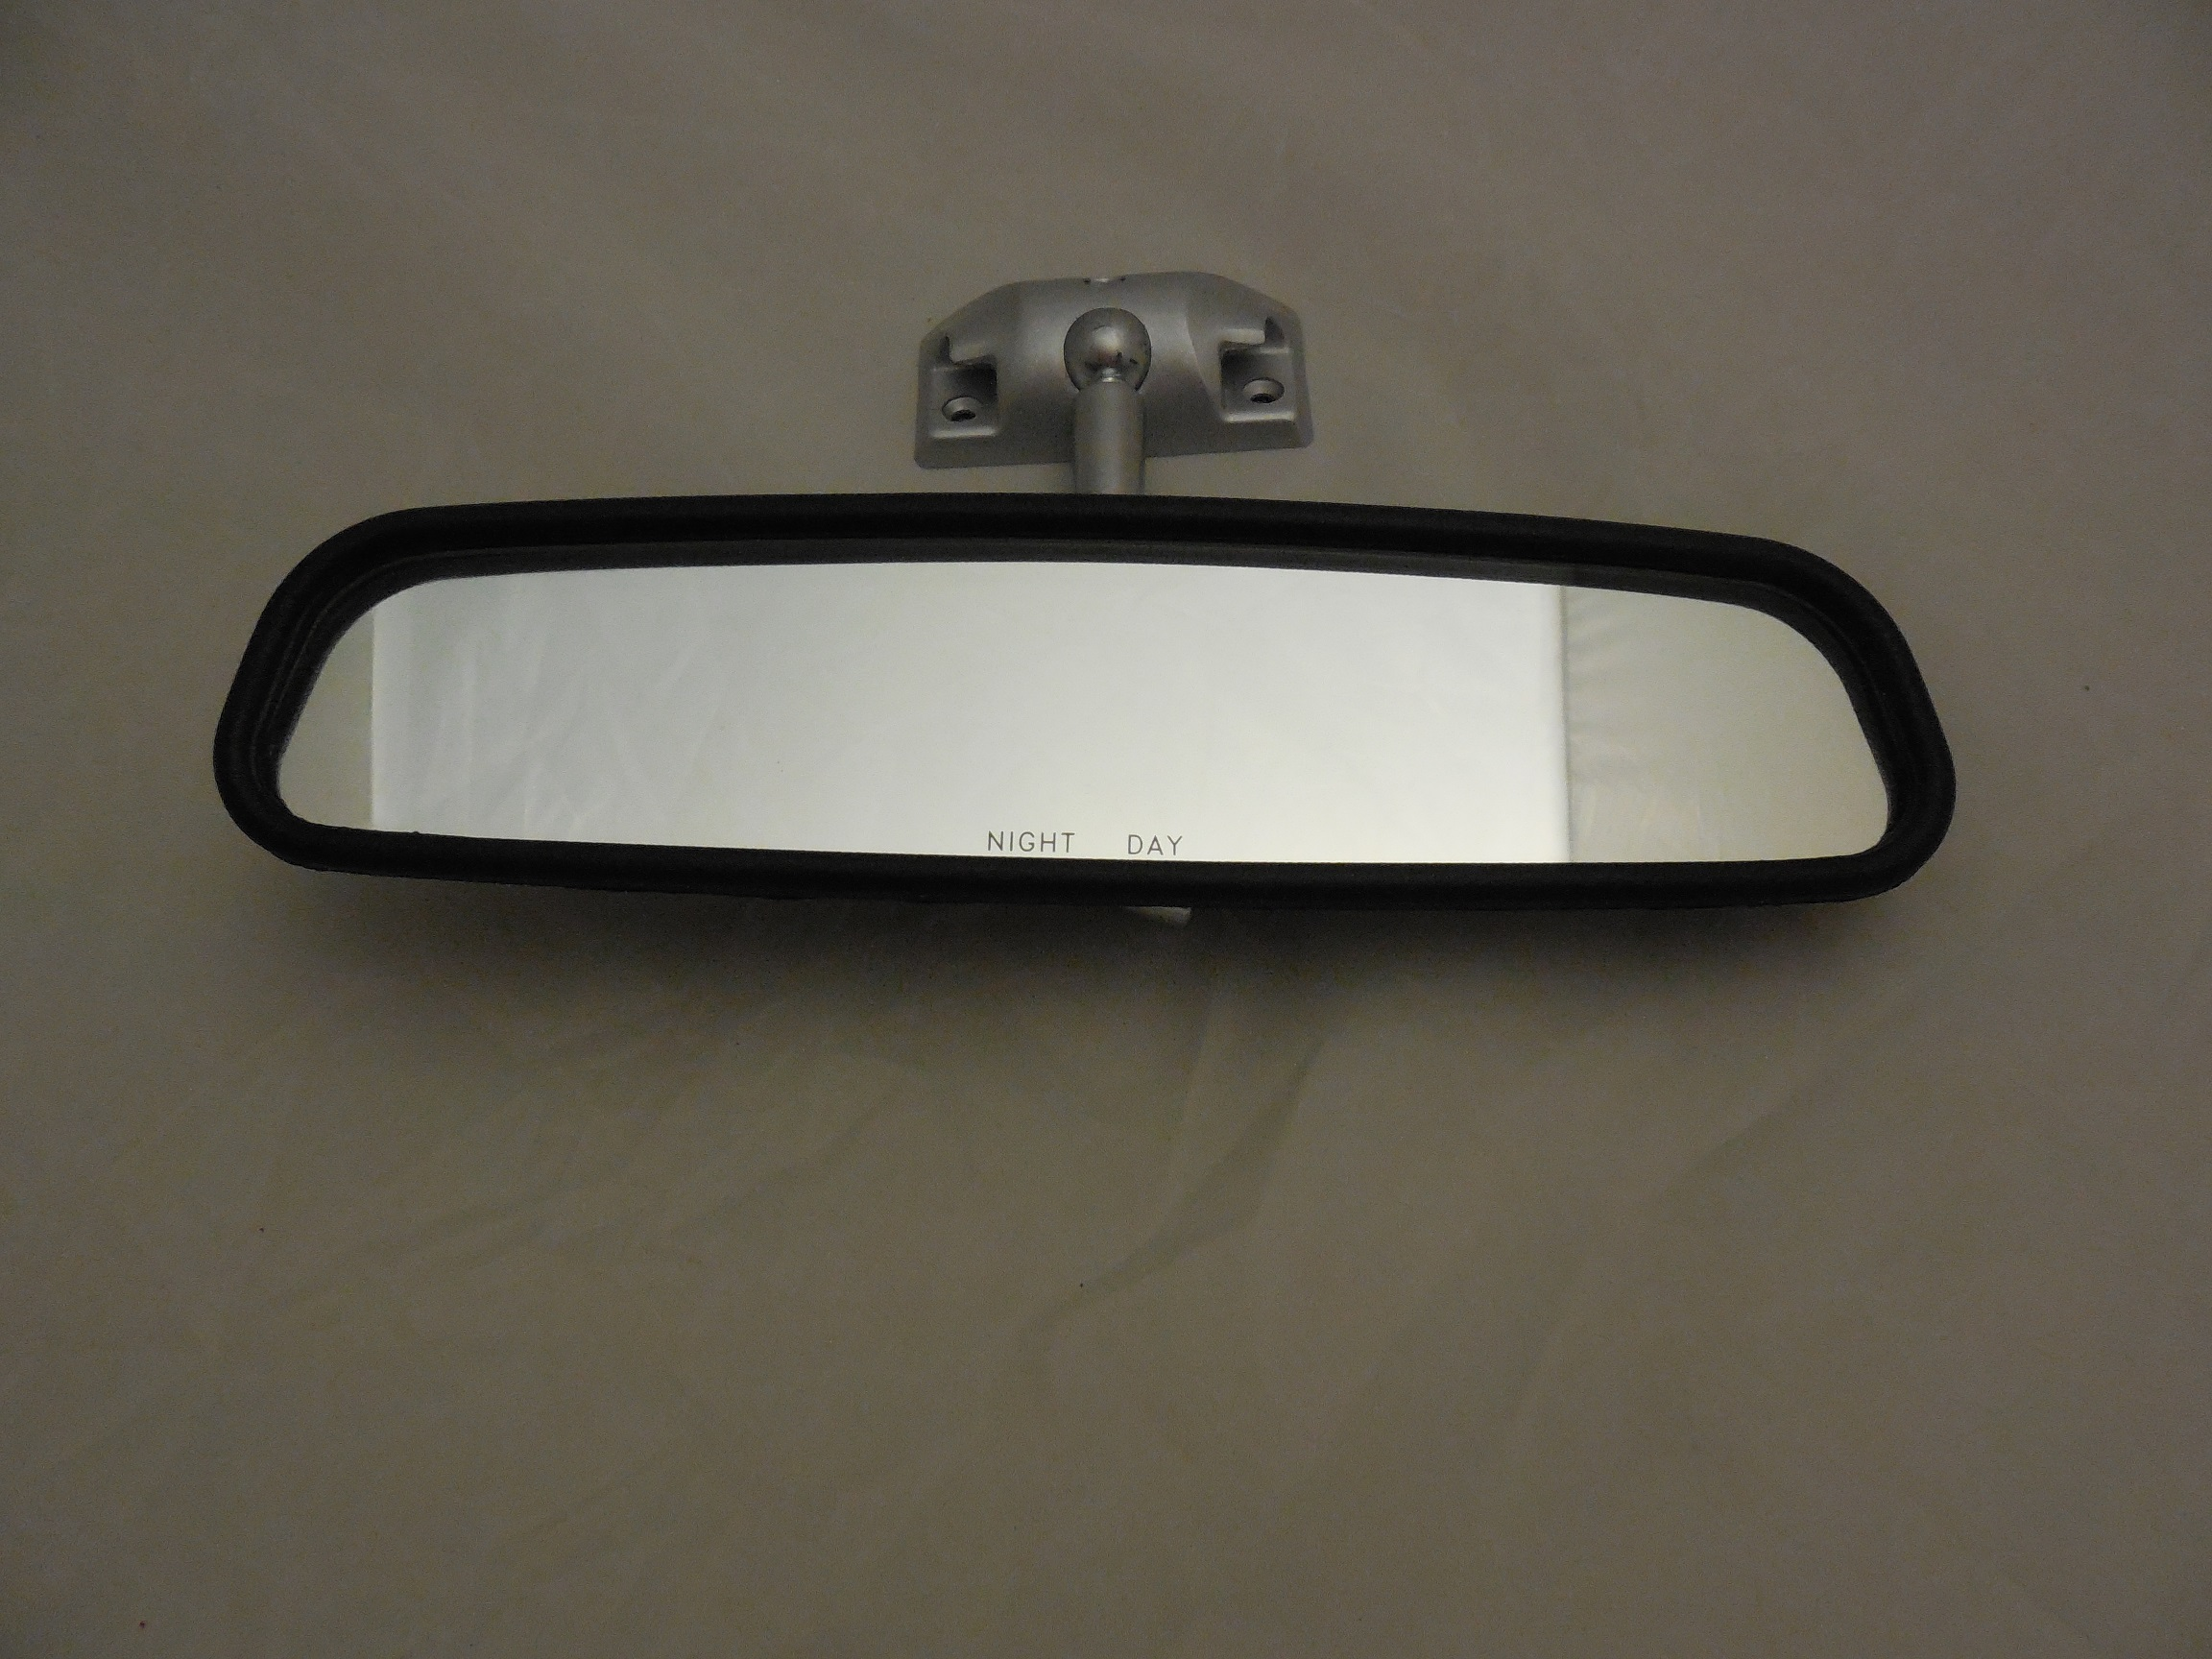 68-70 B, 70 E & 70 A BODY REAR VIEW MIRROR